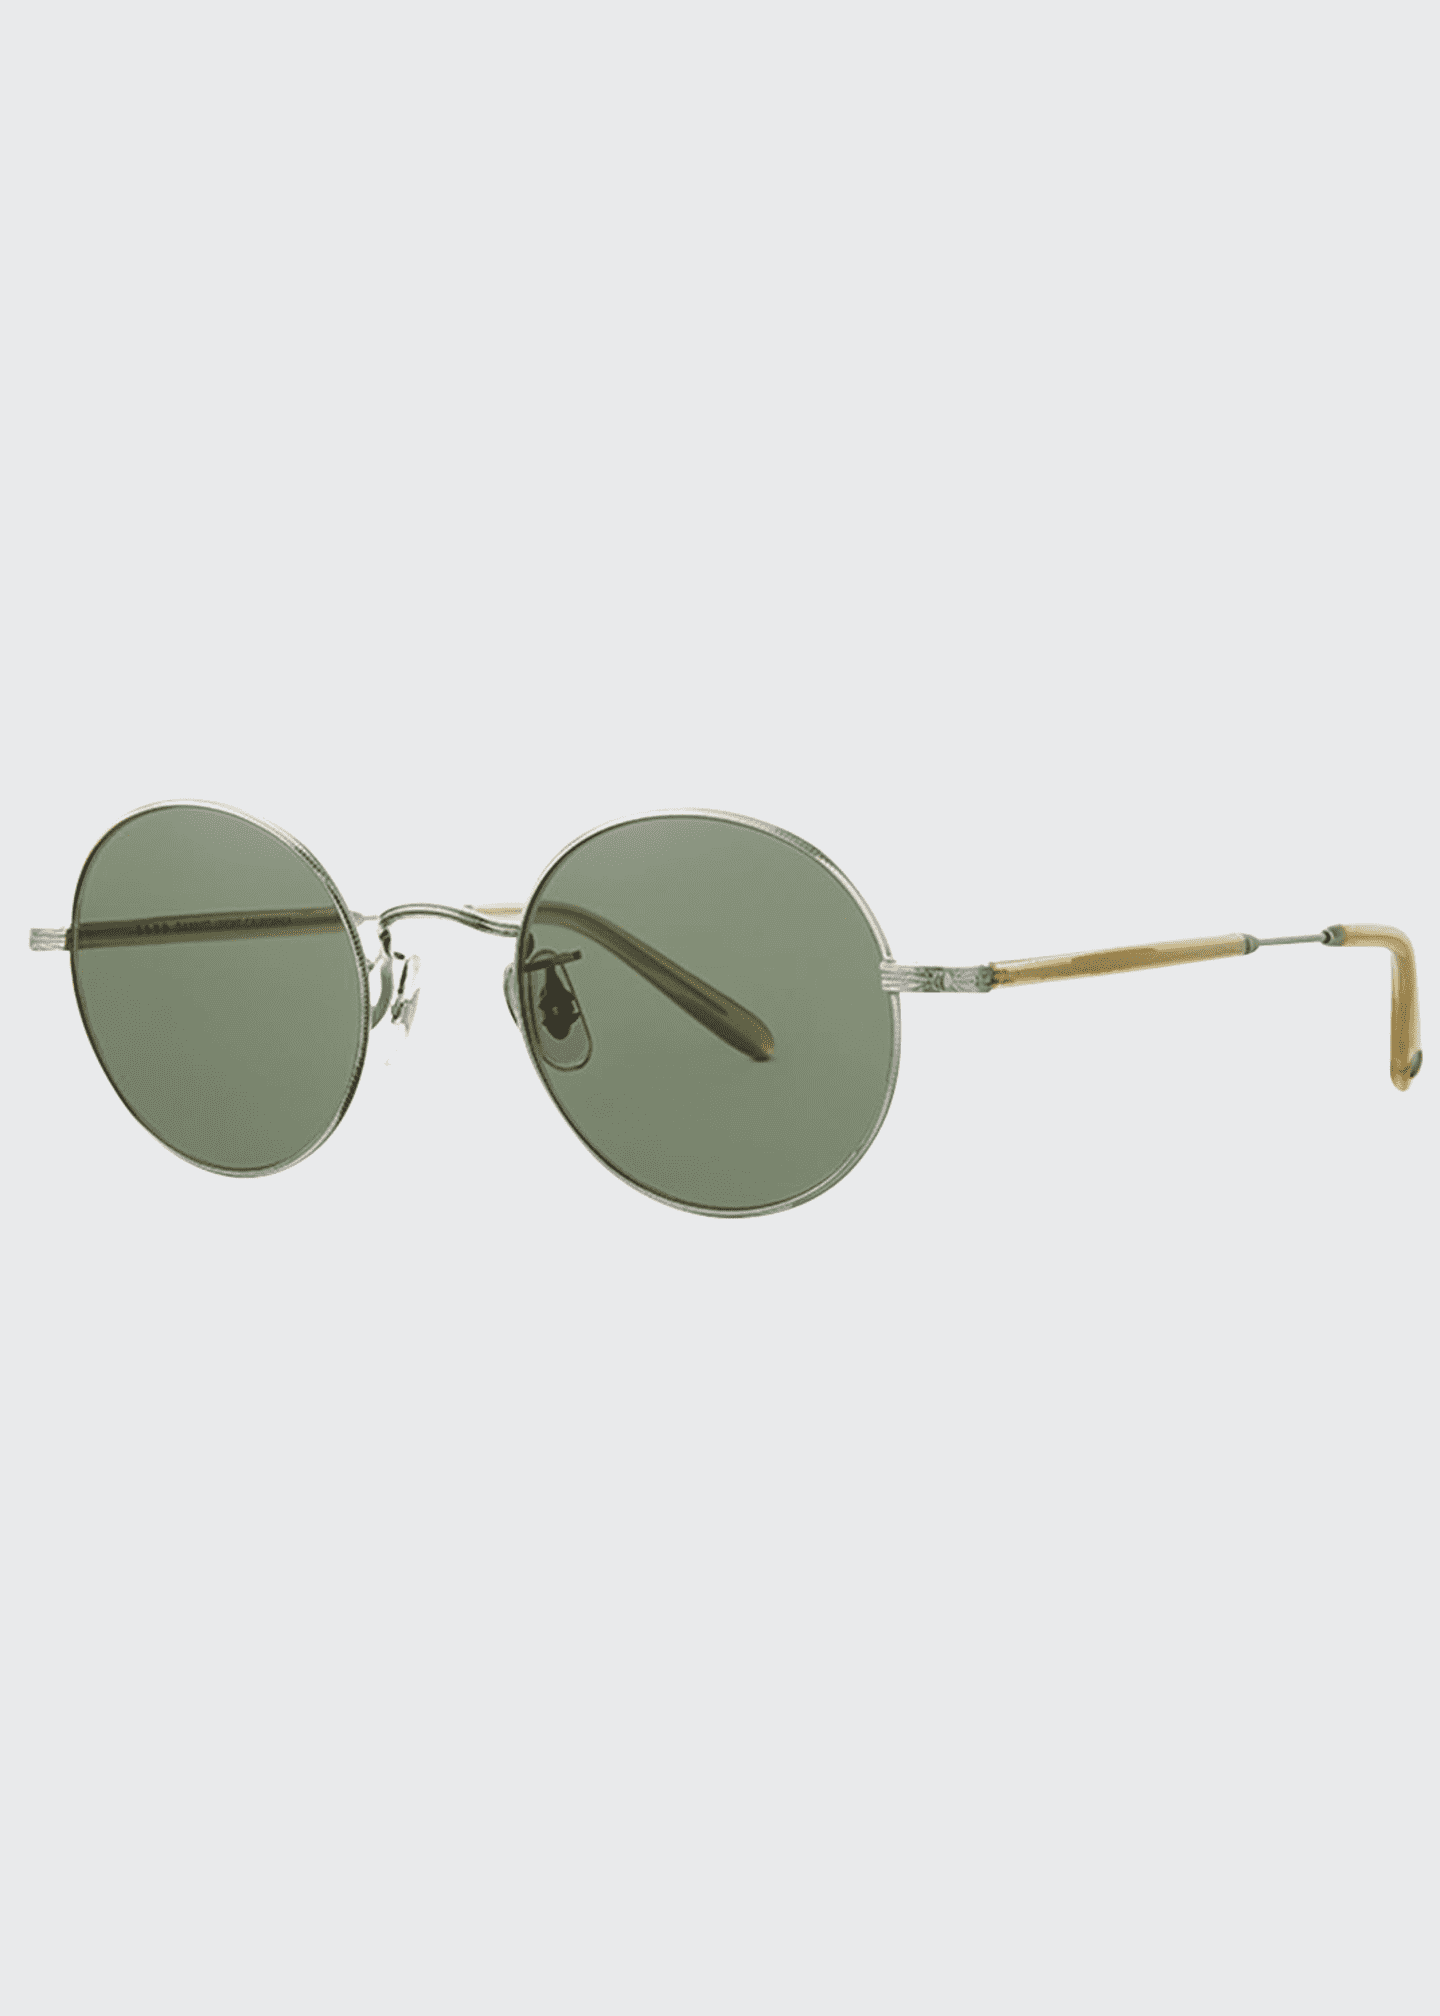 Men's Lovers 46 Round Sunglasses